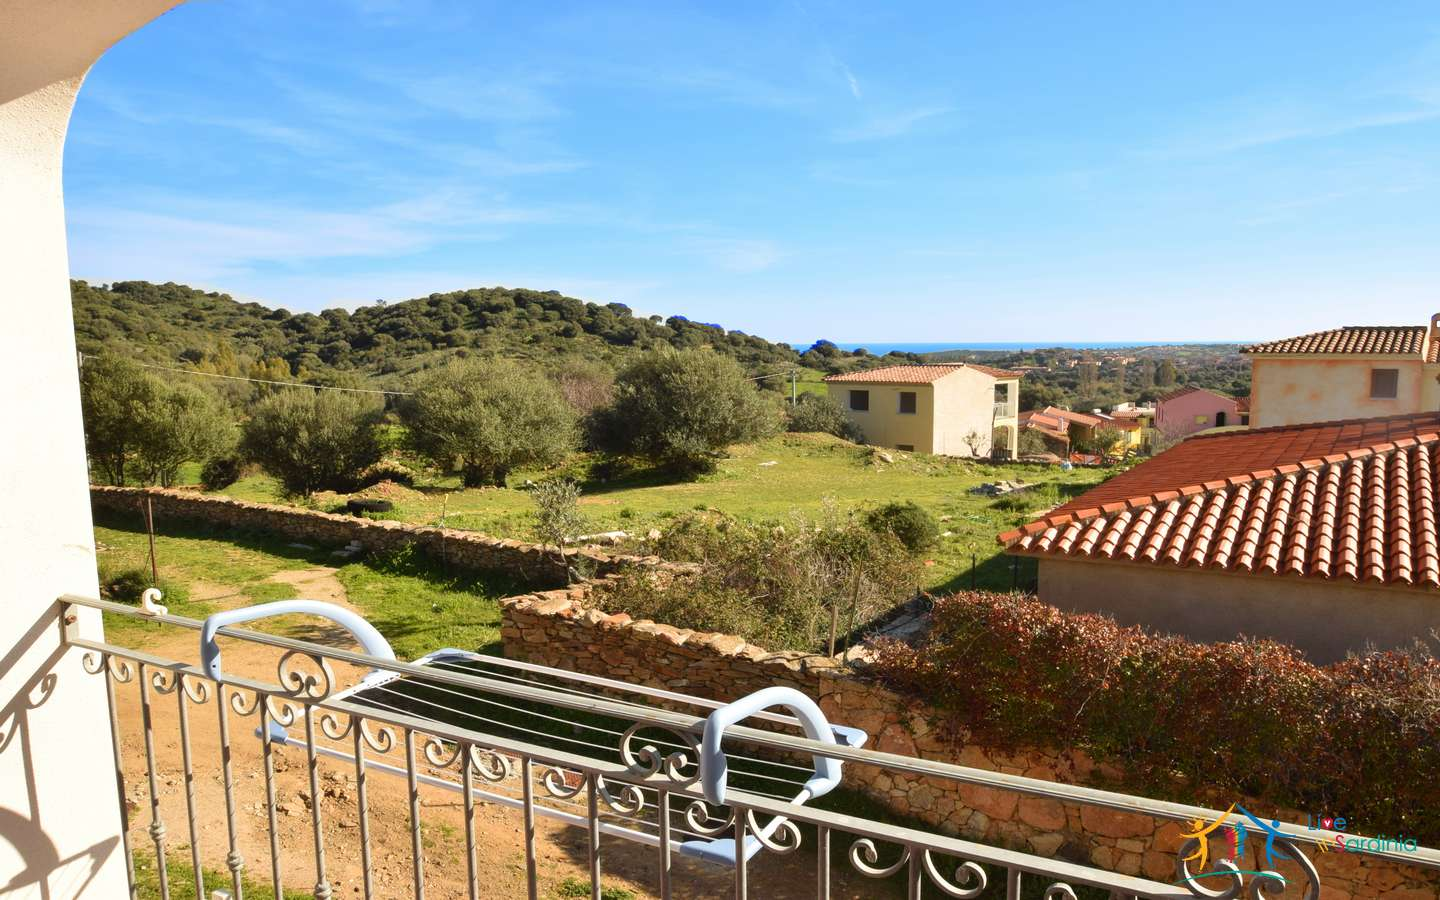 Sea-views 2 Bed Apartment For Sale Near Budoni, North Sardinia